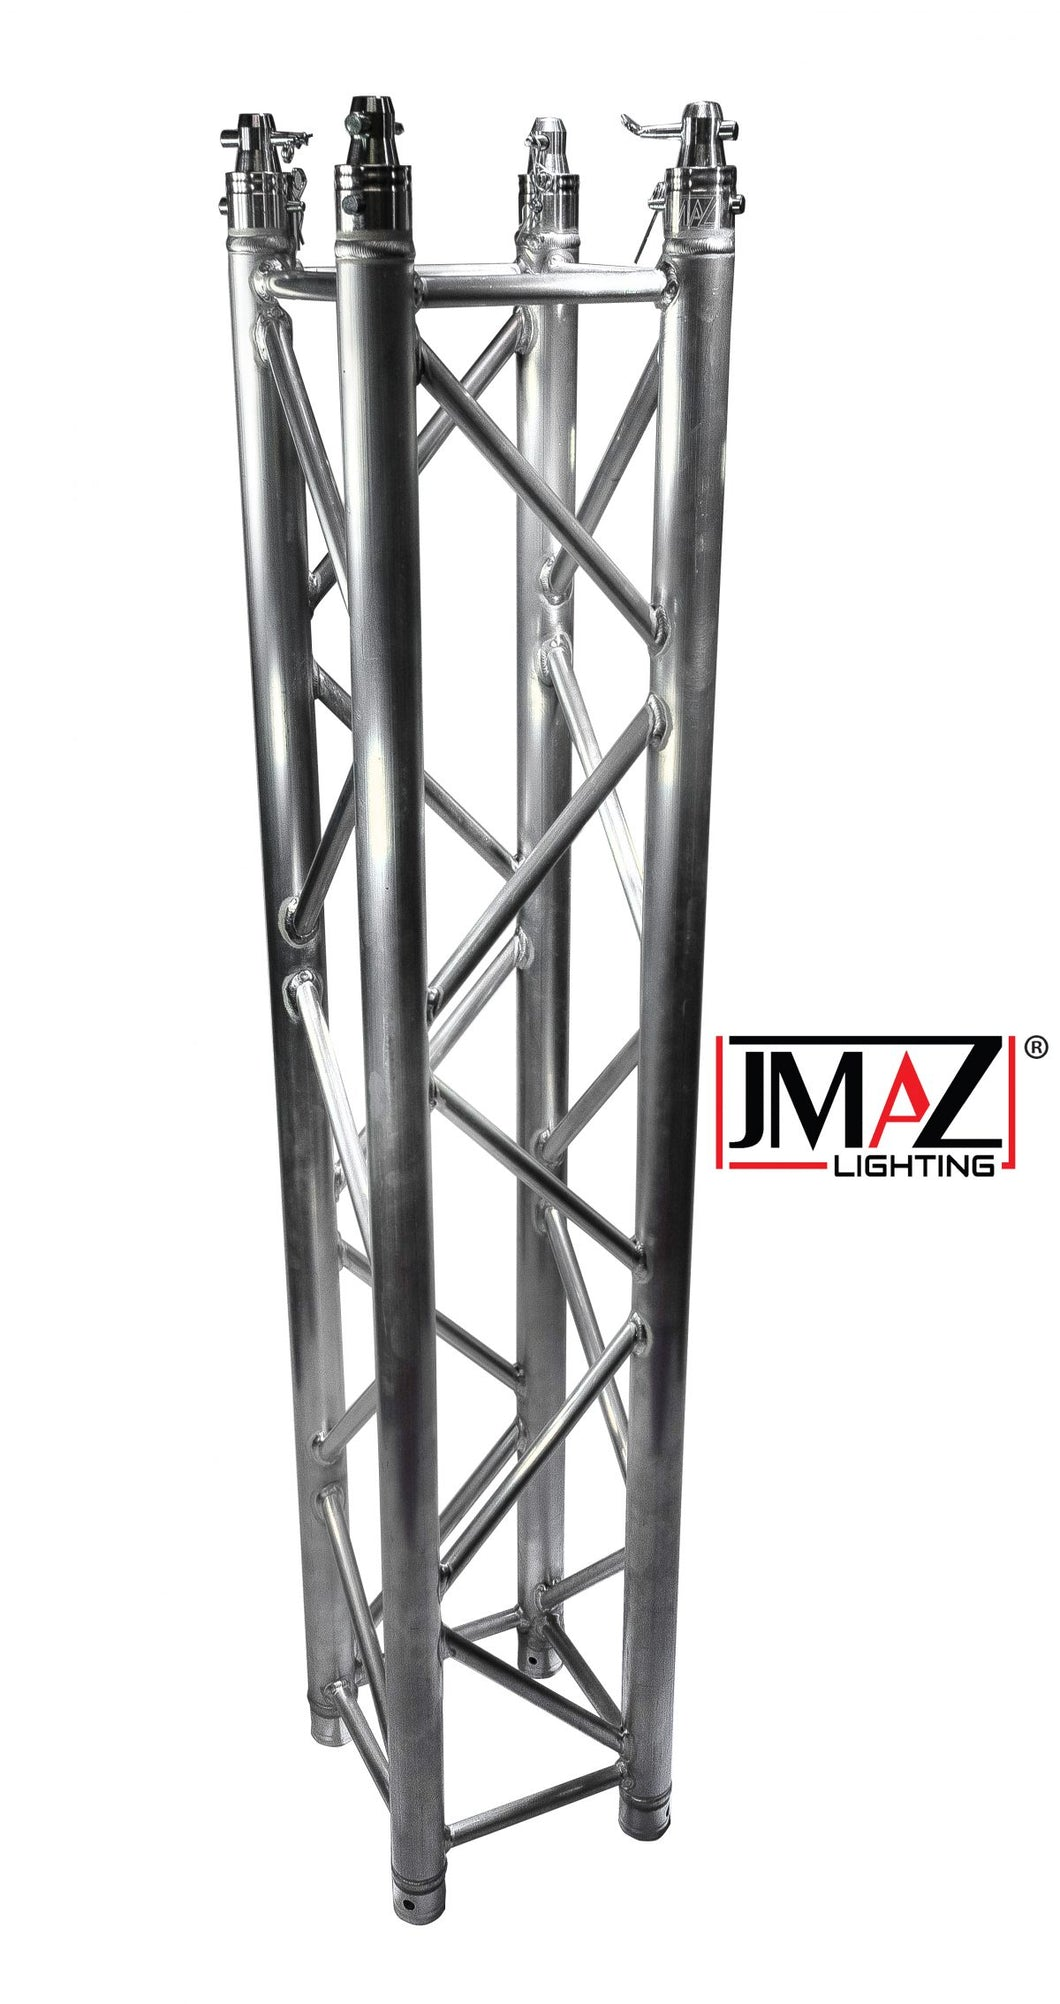 JMAZ 3 Foot Box Truss